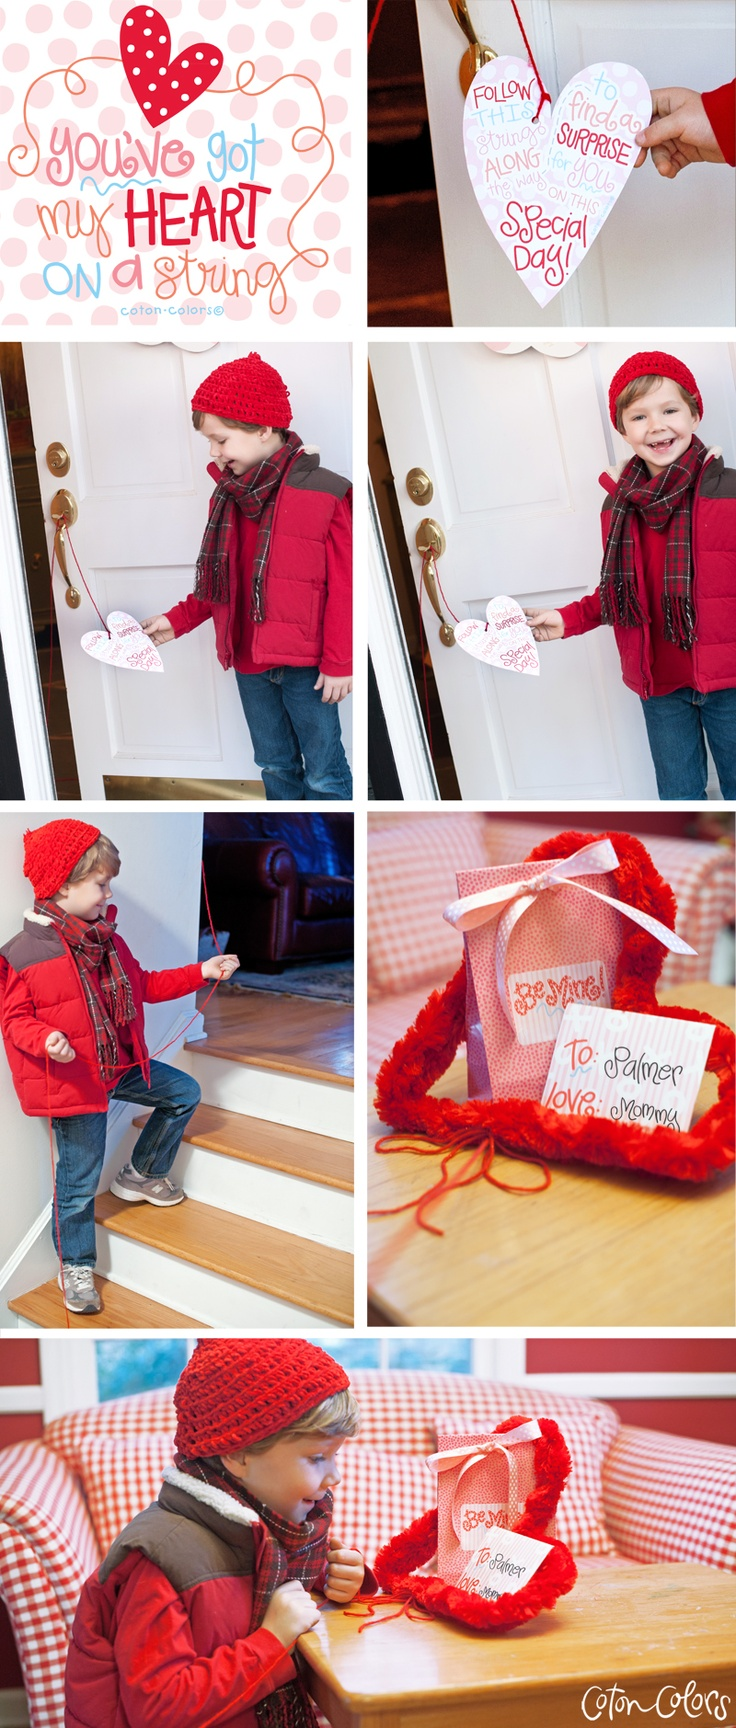 Sweet Valentine Scavenger Hunt for your Kids! Find the free printables on the blog...